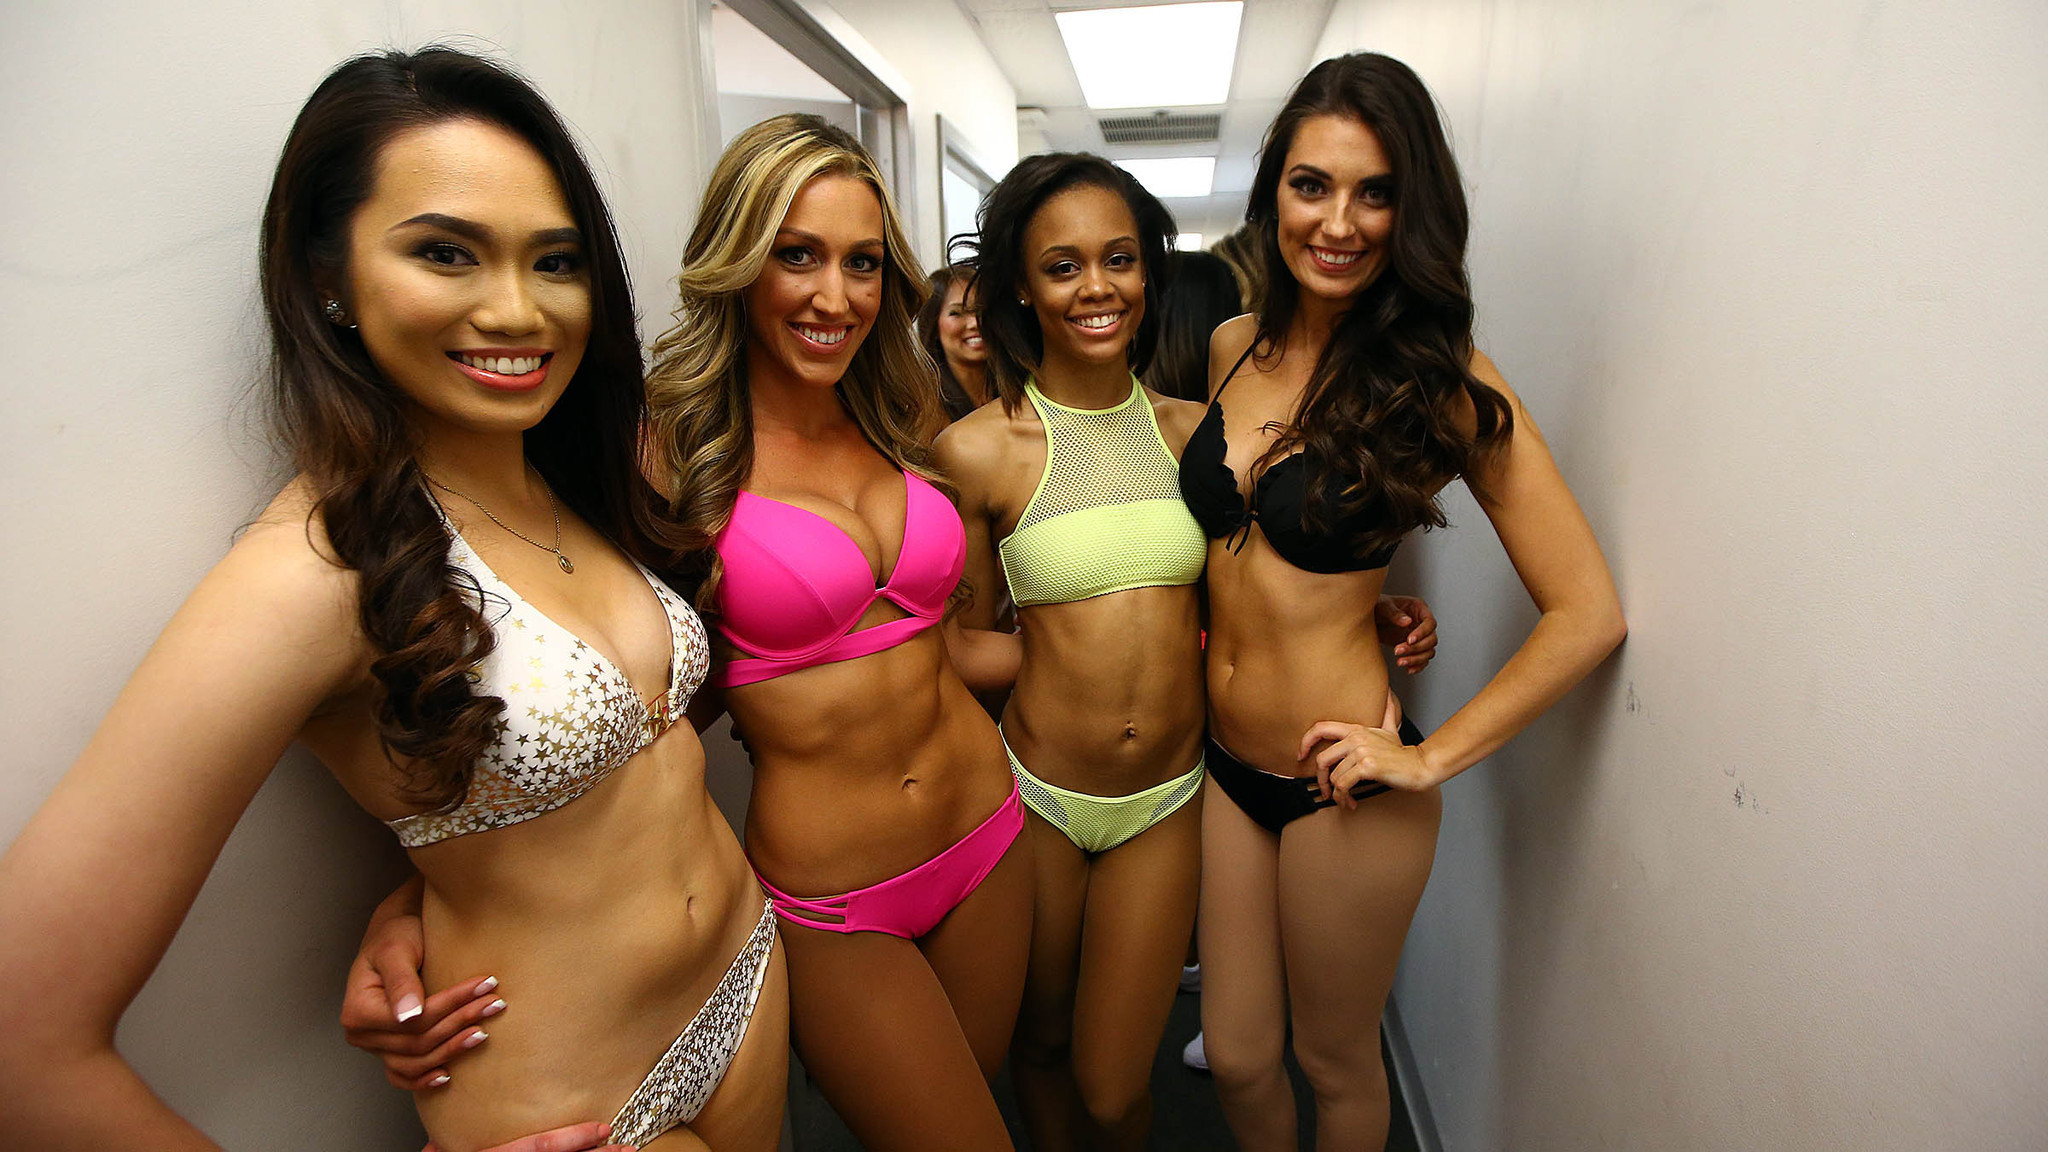 PICTURES  The Philadelphia Eagles Cheerleaders Final Audition Show - The  Morning Call dd7020379